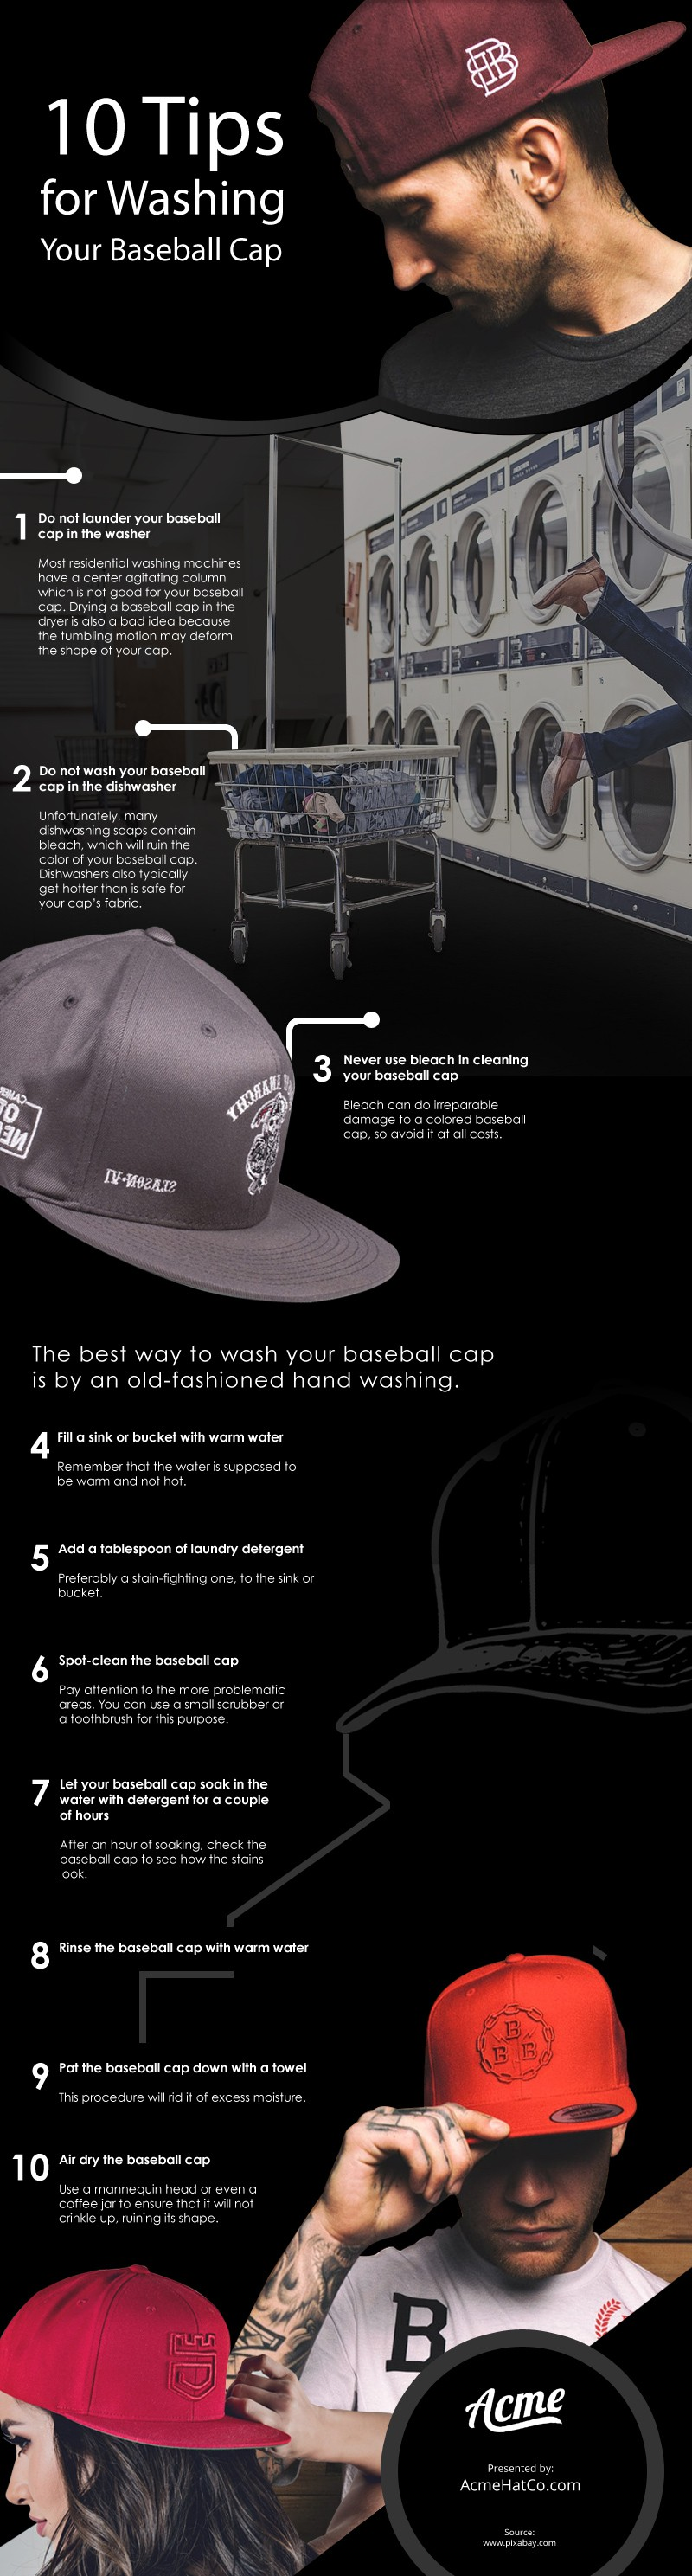 10 Tips for Washing Your Baseball Caps [infographic]